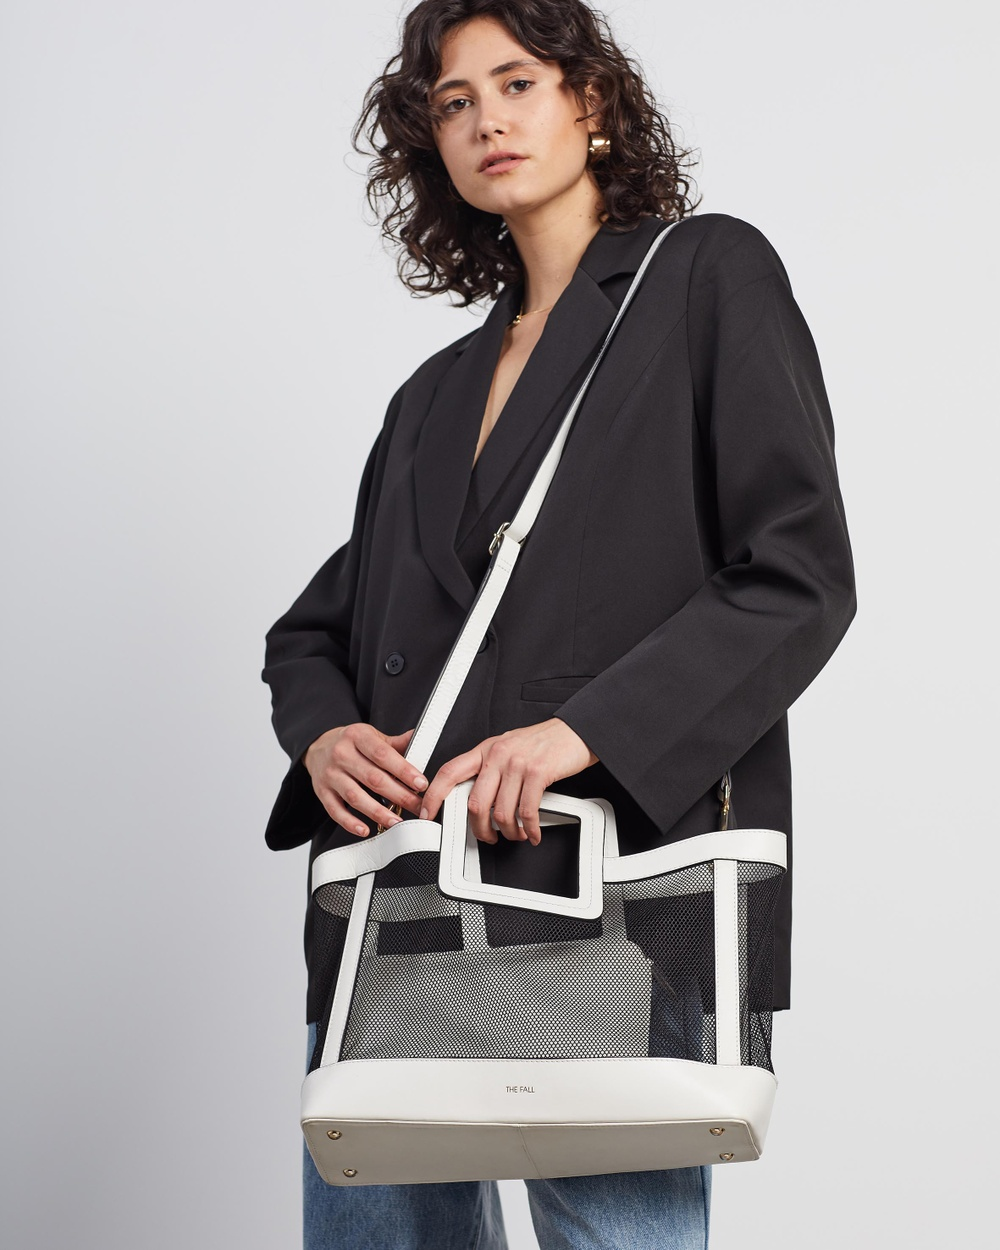 Fall The Label Mesh White Tote with Pouch Insert Bags White